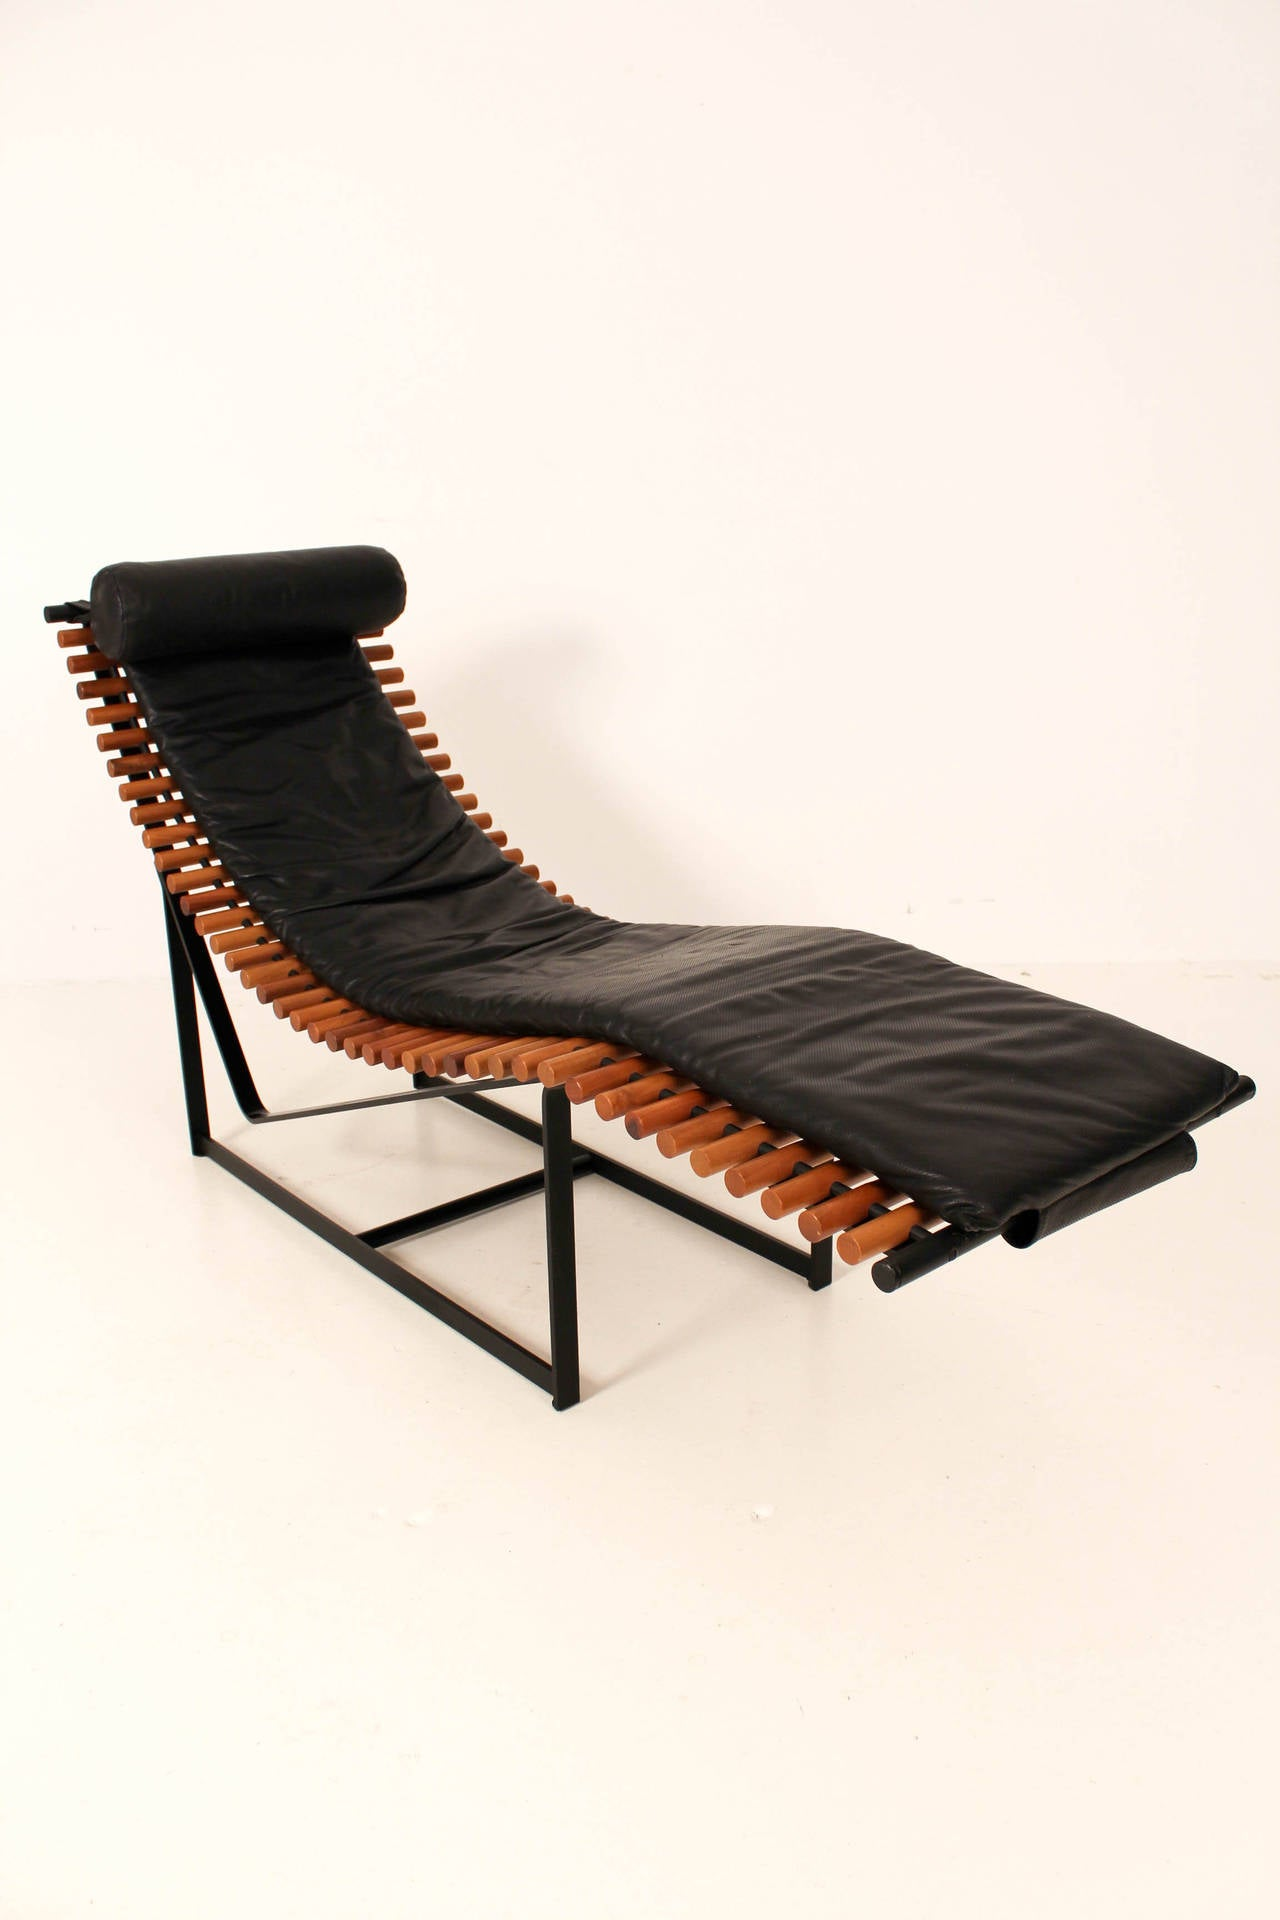 Funky mid century modern chaise longue 1970s at 1stdibs for Chaise longue moderne